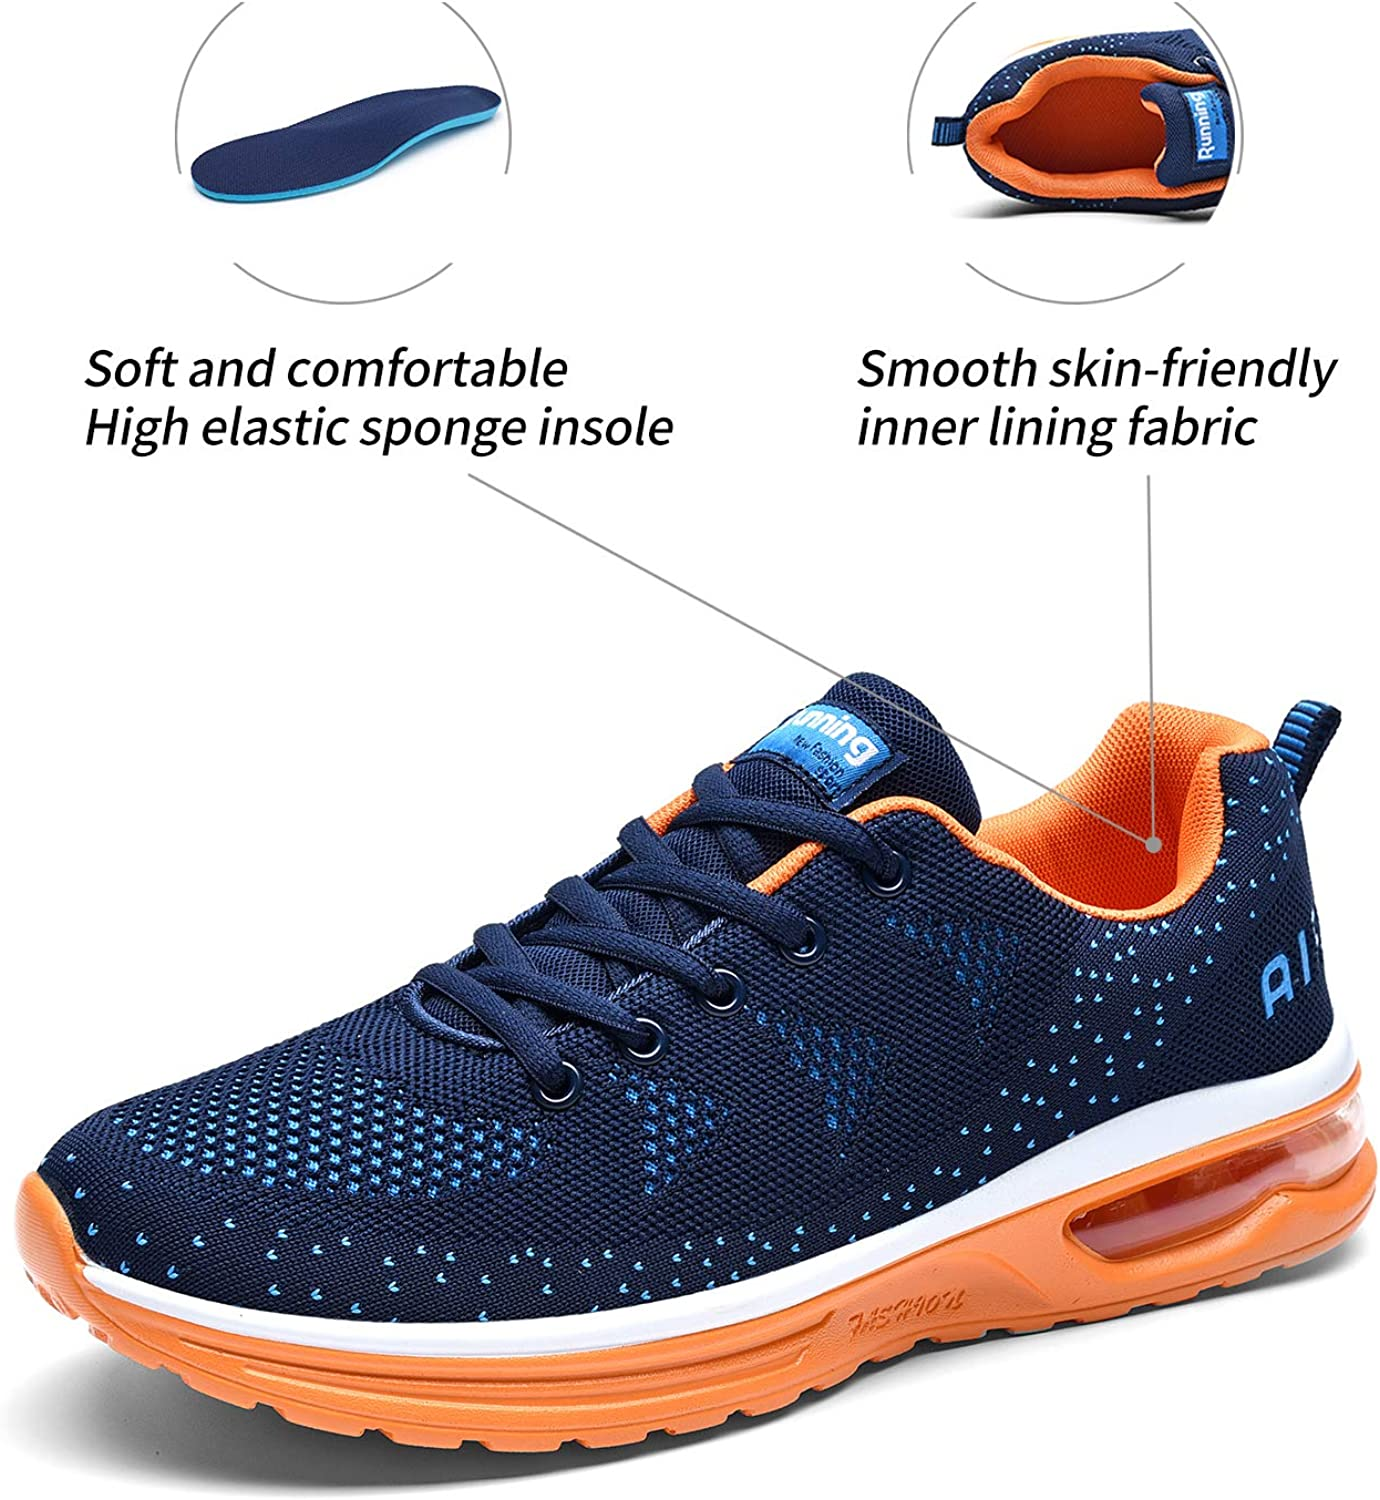 Mens Running Shoes 10 On9in Mens Walking Athletic Shoes Comfort Casual Sneaker Cross Training Running Footwear for Men Tennis Racquetball Indoor